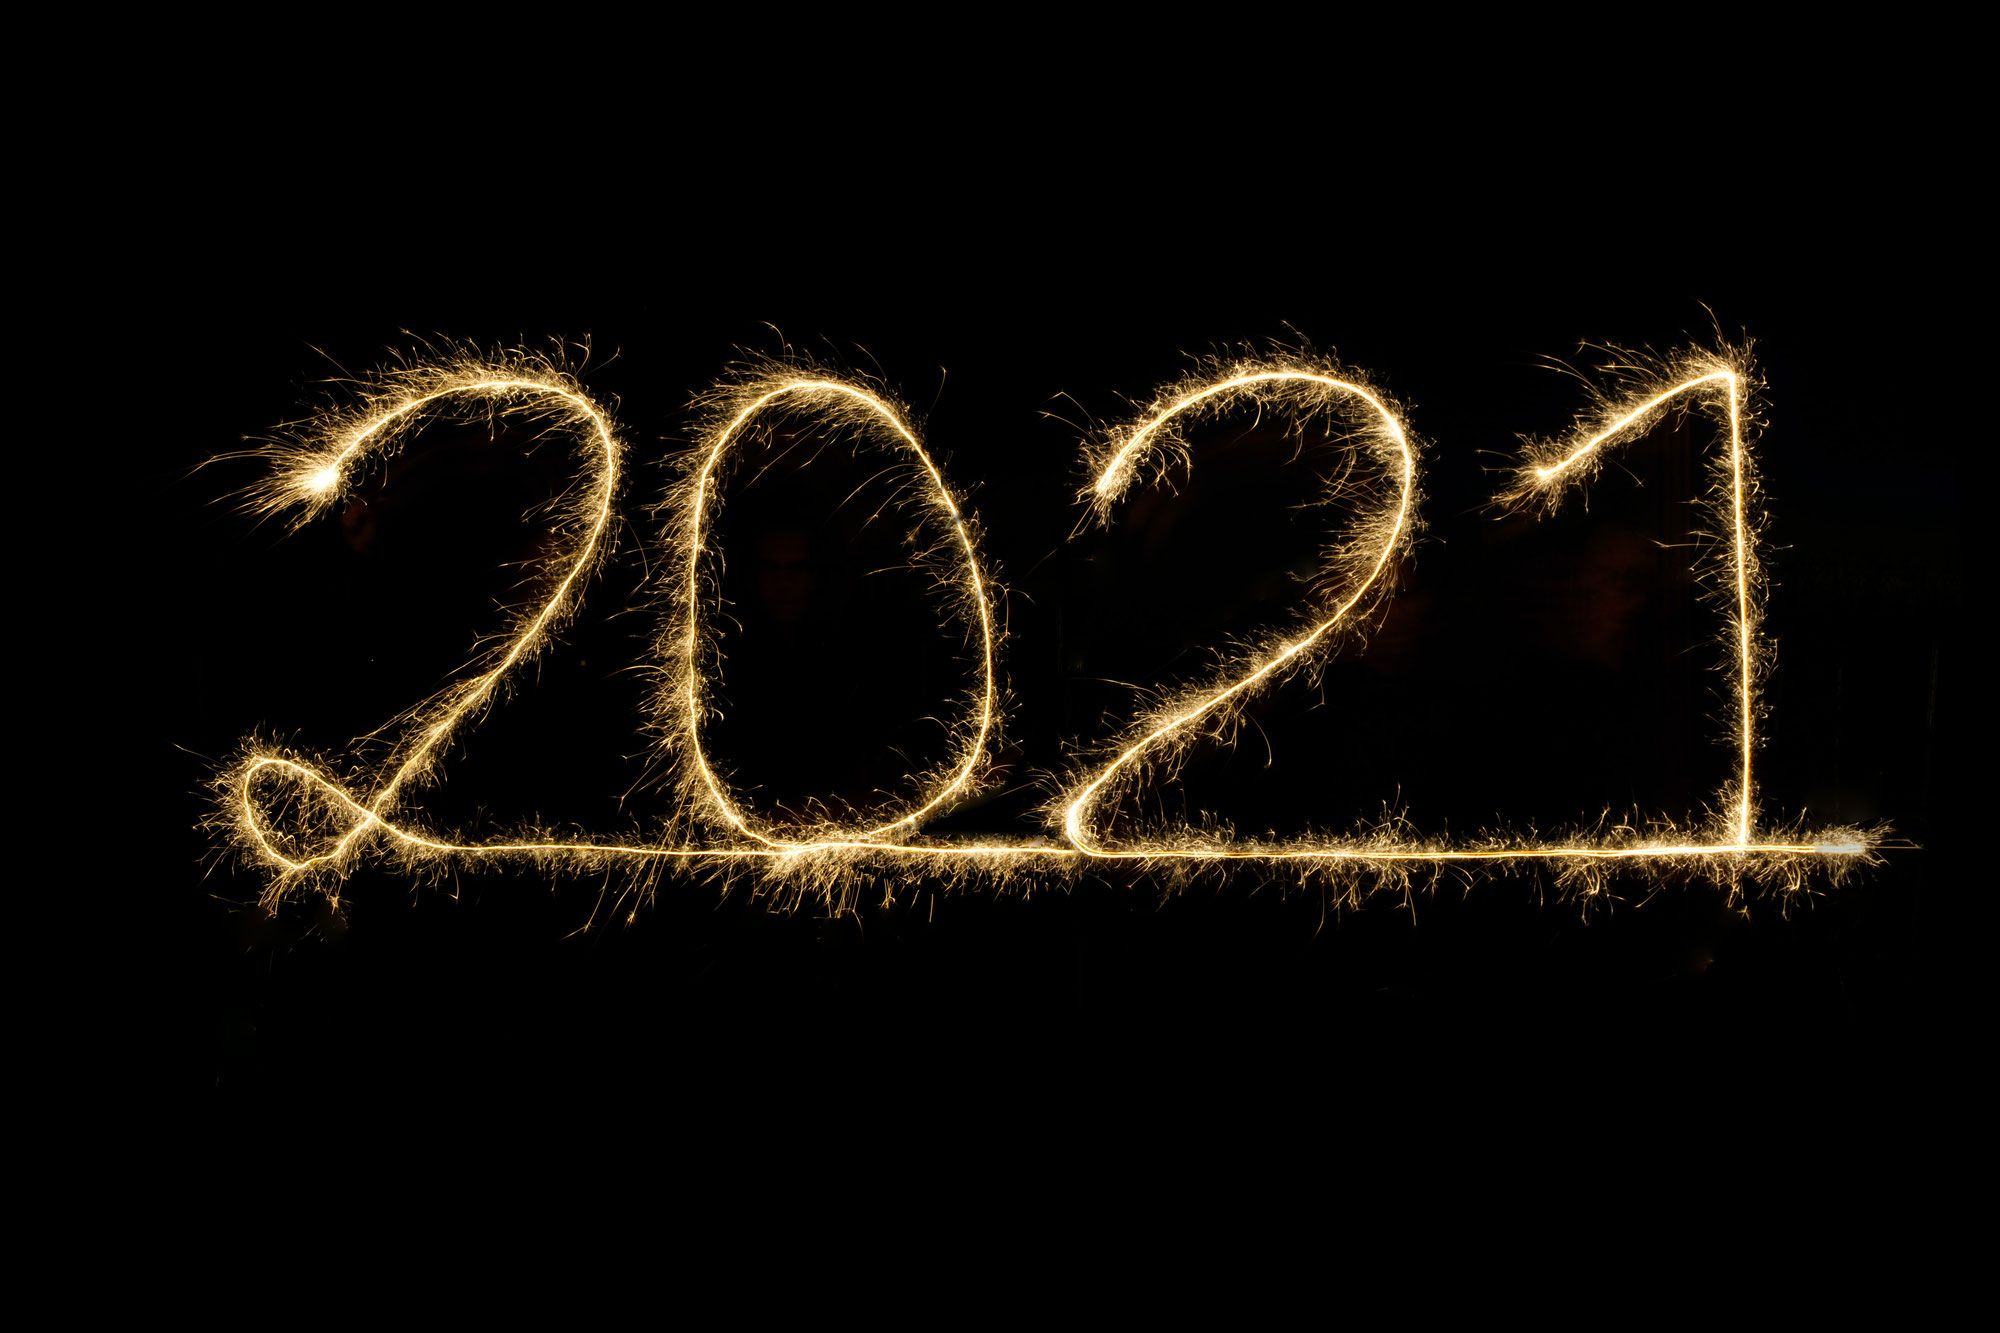 2021- A YEAR OF BEING AT A CROSSROAD